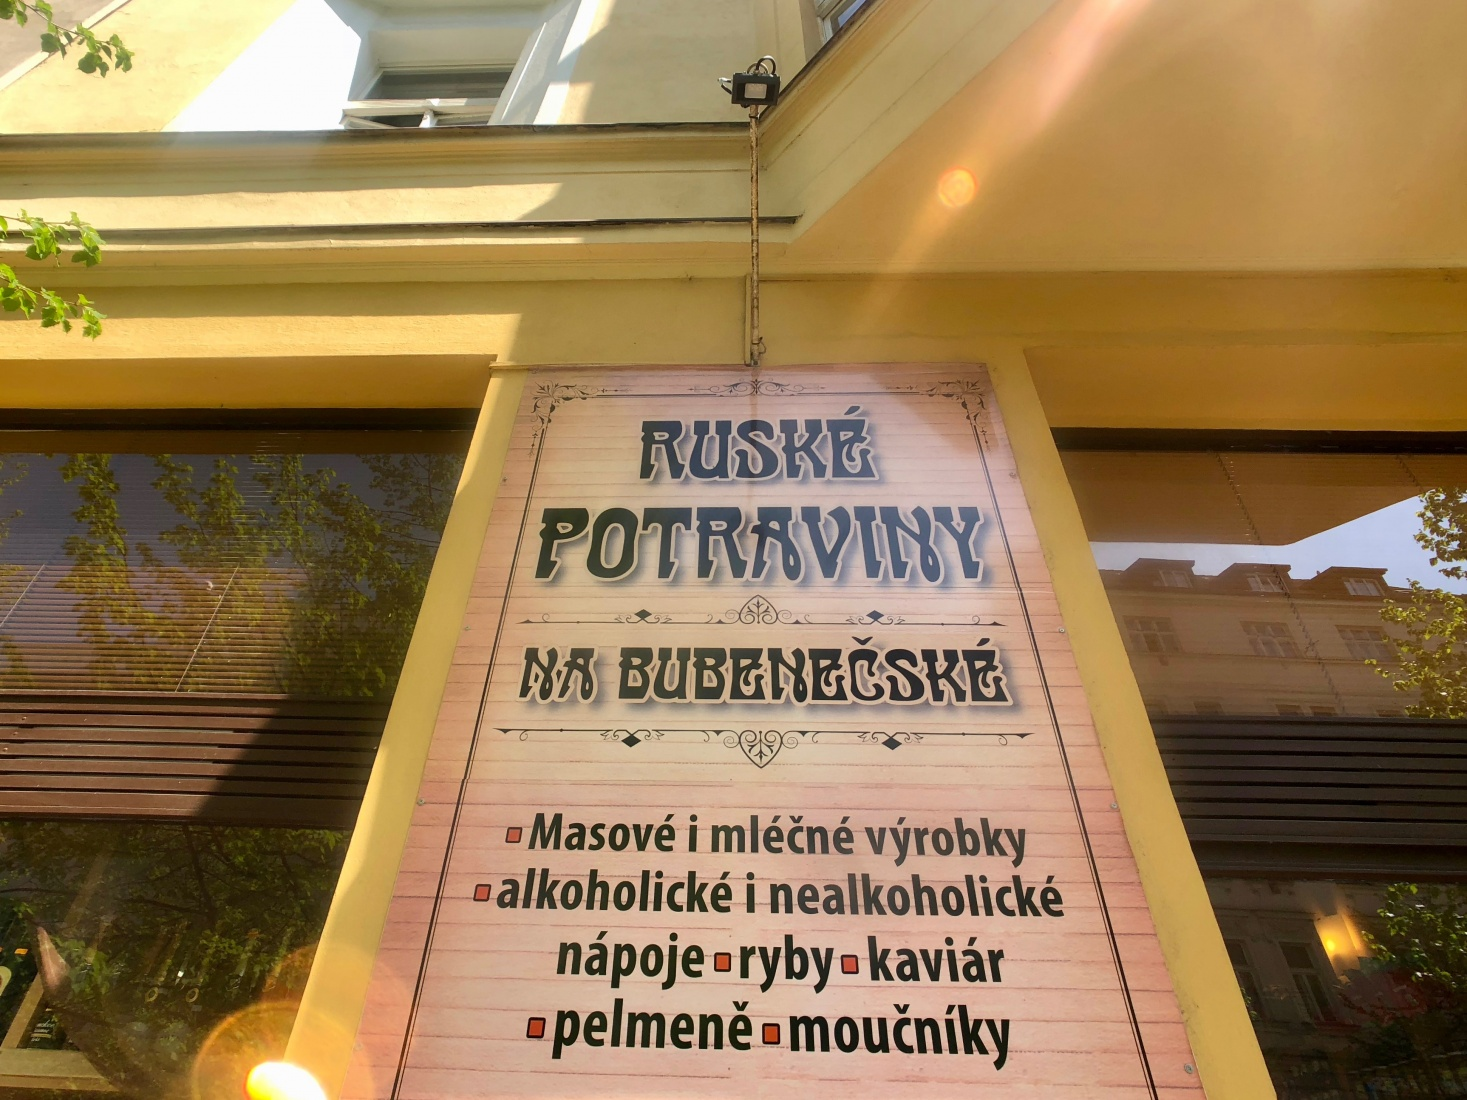 Russian grocery store in Prague, Bubeneč, specializes in Russian foods and delicacies.